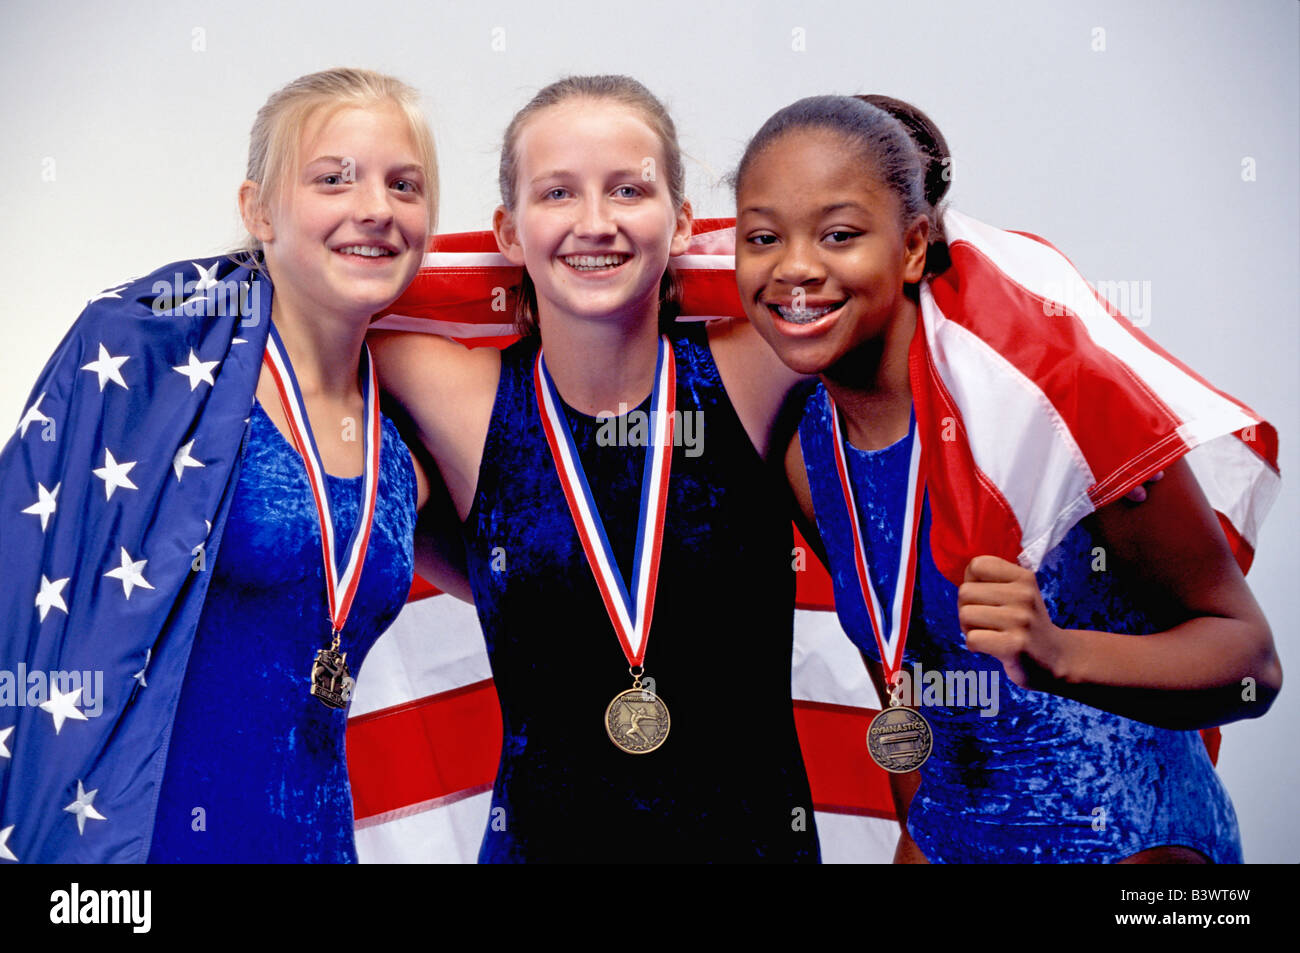 Winning Female gymnasts drape themselves in American flag - Stock Image